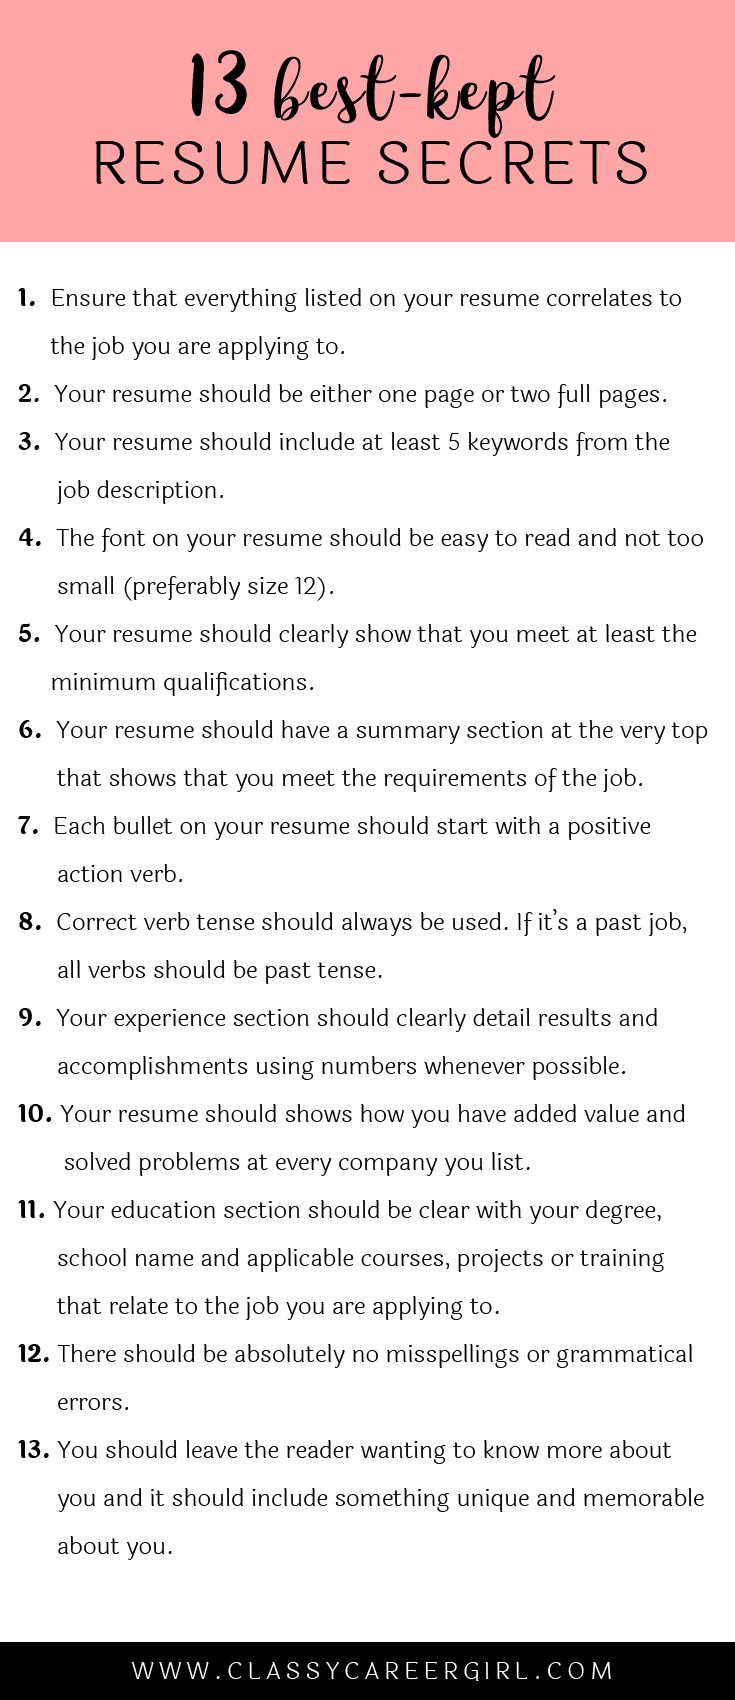 Opposenewapstandardsus  Nice  Ideas About Resume On Pinterest  Cv Format Resume Cv And  With Heavenly Some Hiring Managers Will Toss Your Resume Out If You Dont Know These  With Astonishing Beginner Resume Also Resume Objective Ideas In Addition Making A Good Resume And Resume Objectives For Customer Service As Well As Automotive Resume Additionally Computer Programs For Resume From Pinterestcom With Opposenewapstandardsus  Heavenly  Ideas About Resume On Pinterest  Cv Format Resume Cv And  With Astonishing Some Hiring Managers Will Toss Your Resume Out If You Dont Know These  And Nice Beginner Resume Also Resume Objective Ideas In Addition Making A Good Resume From Pinterestcom